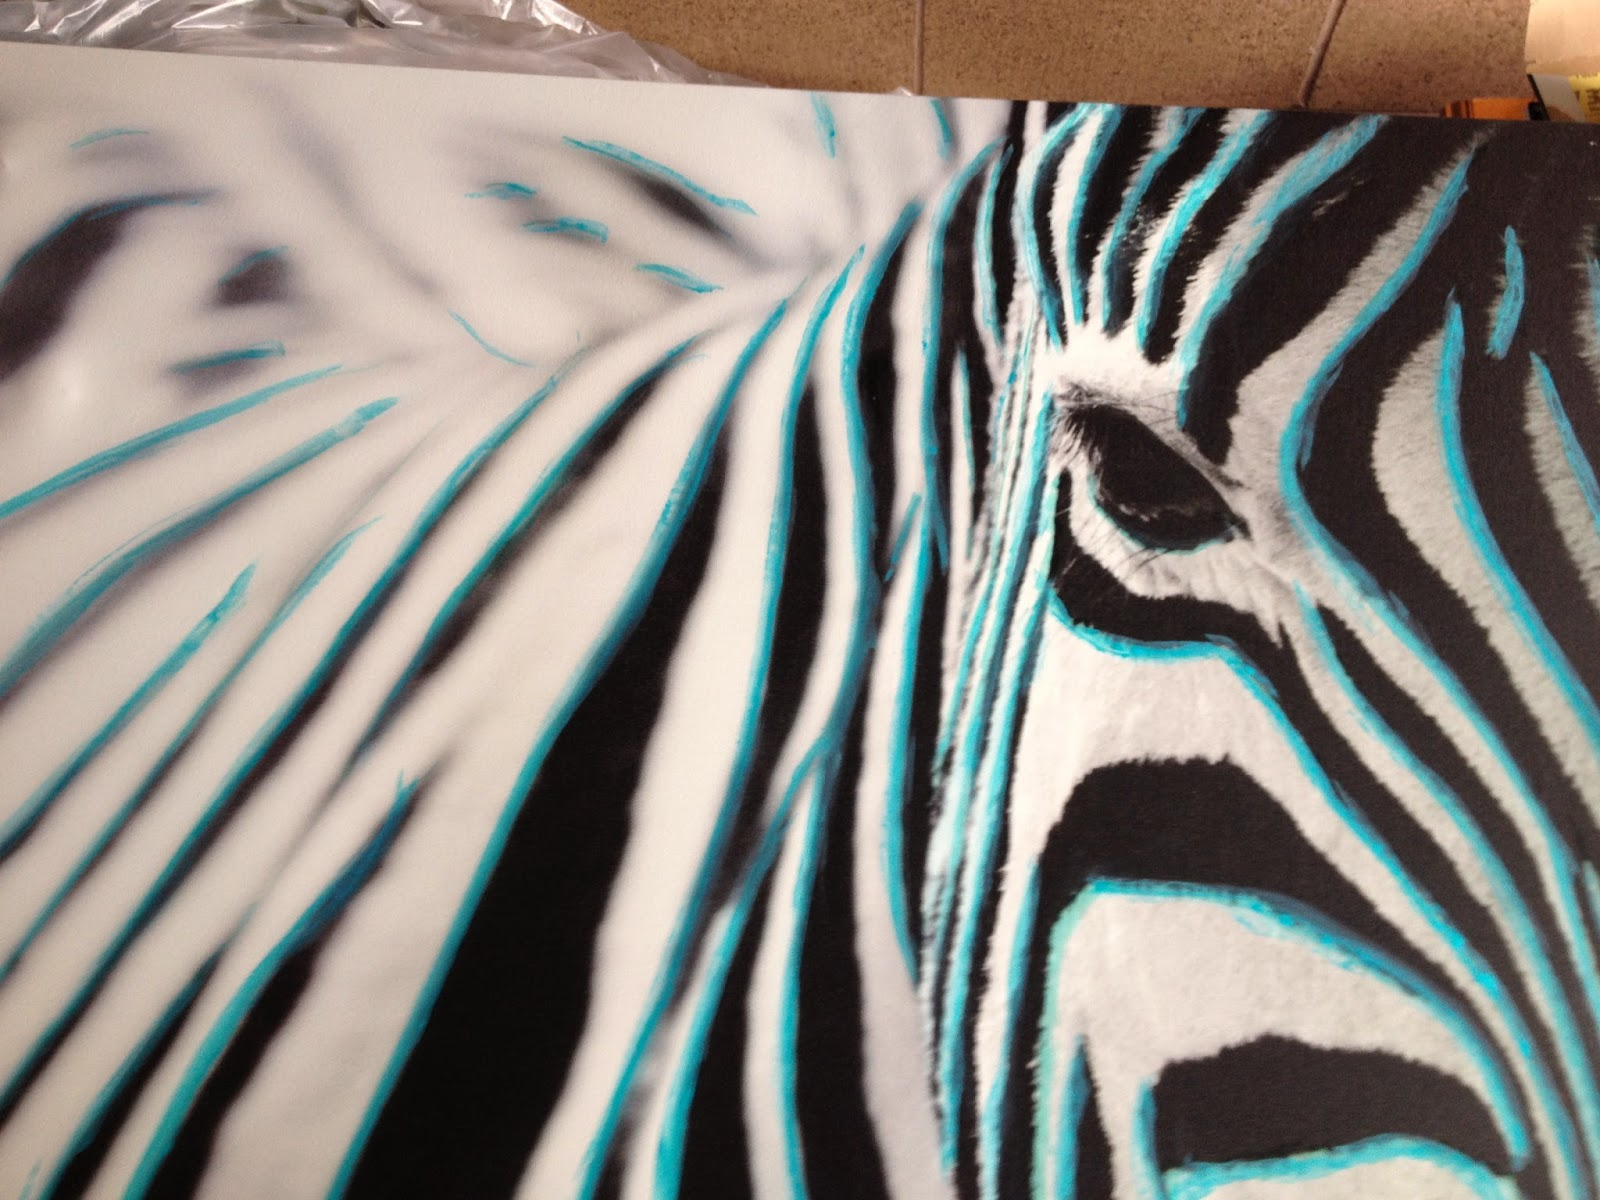 refinish refurnish ikea pj tteryd zebra canvas gets teal highlights. Black Bedroom Furniture Sets. Home Design Ideas